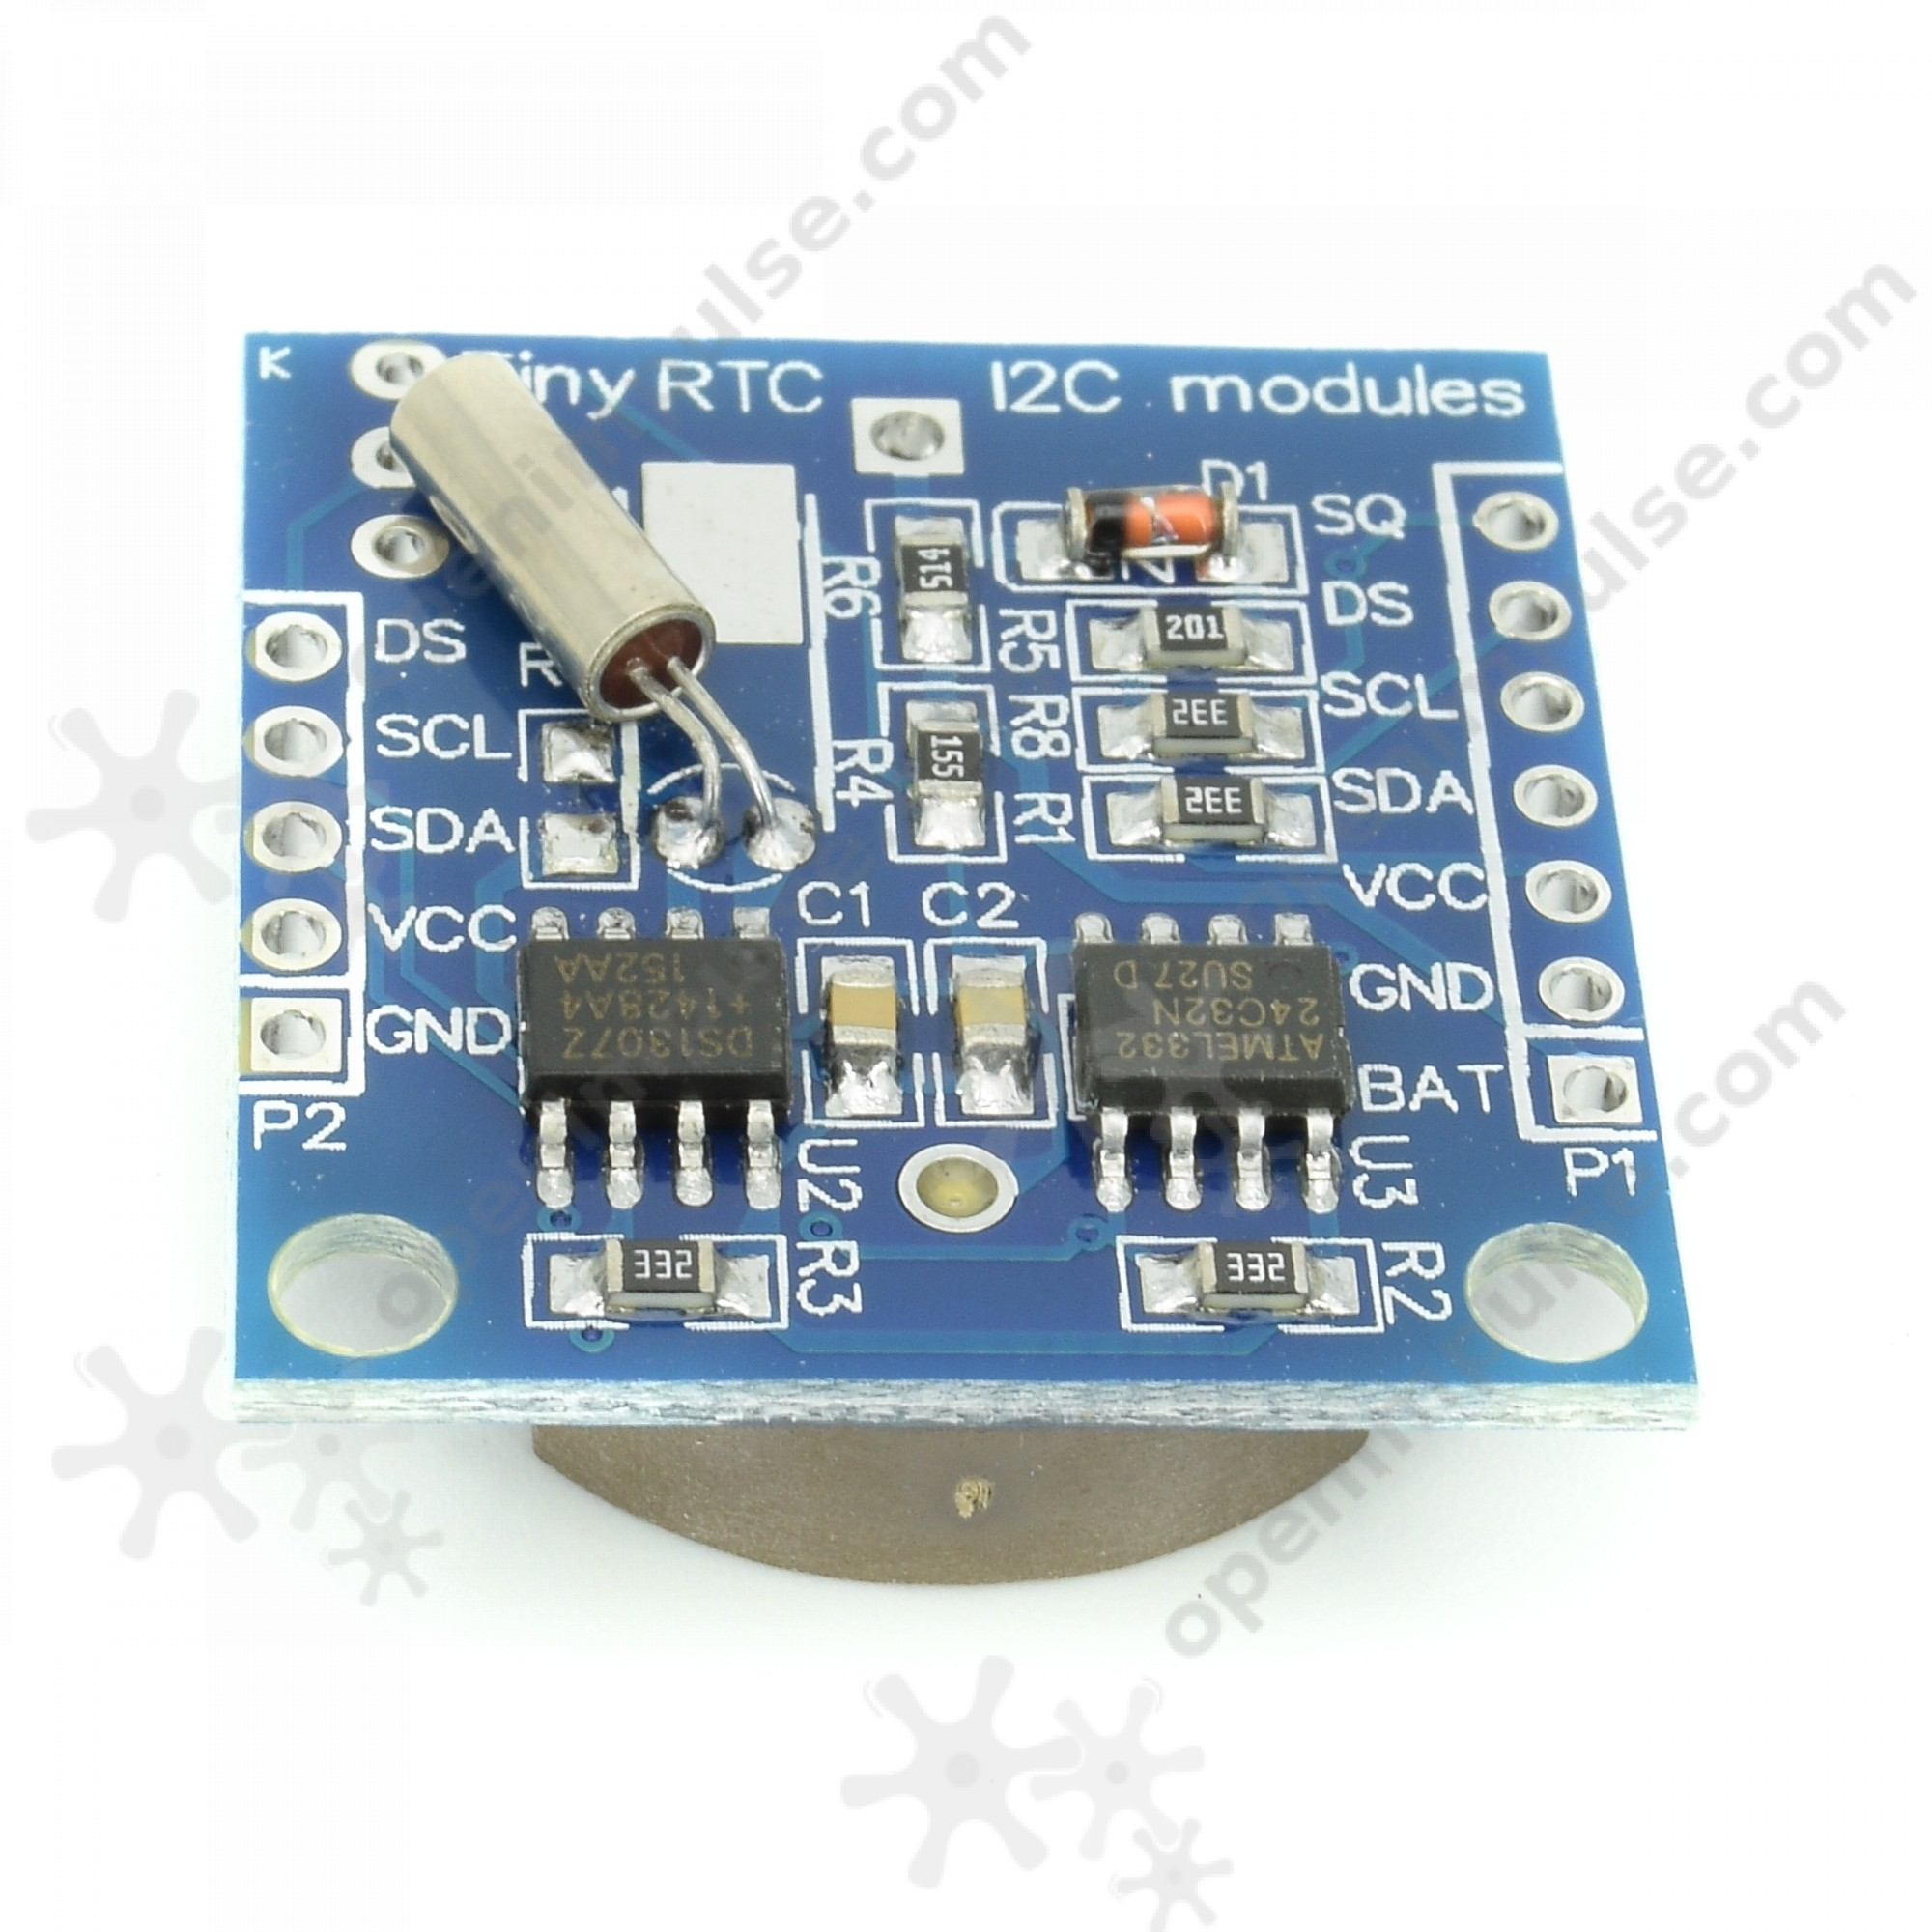 Ds1307 Real Time Clock Module Open Impulseopen Impulse Digital Using Pic Microcontroller And Rtc 4 5